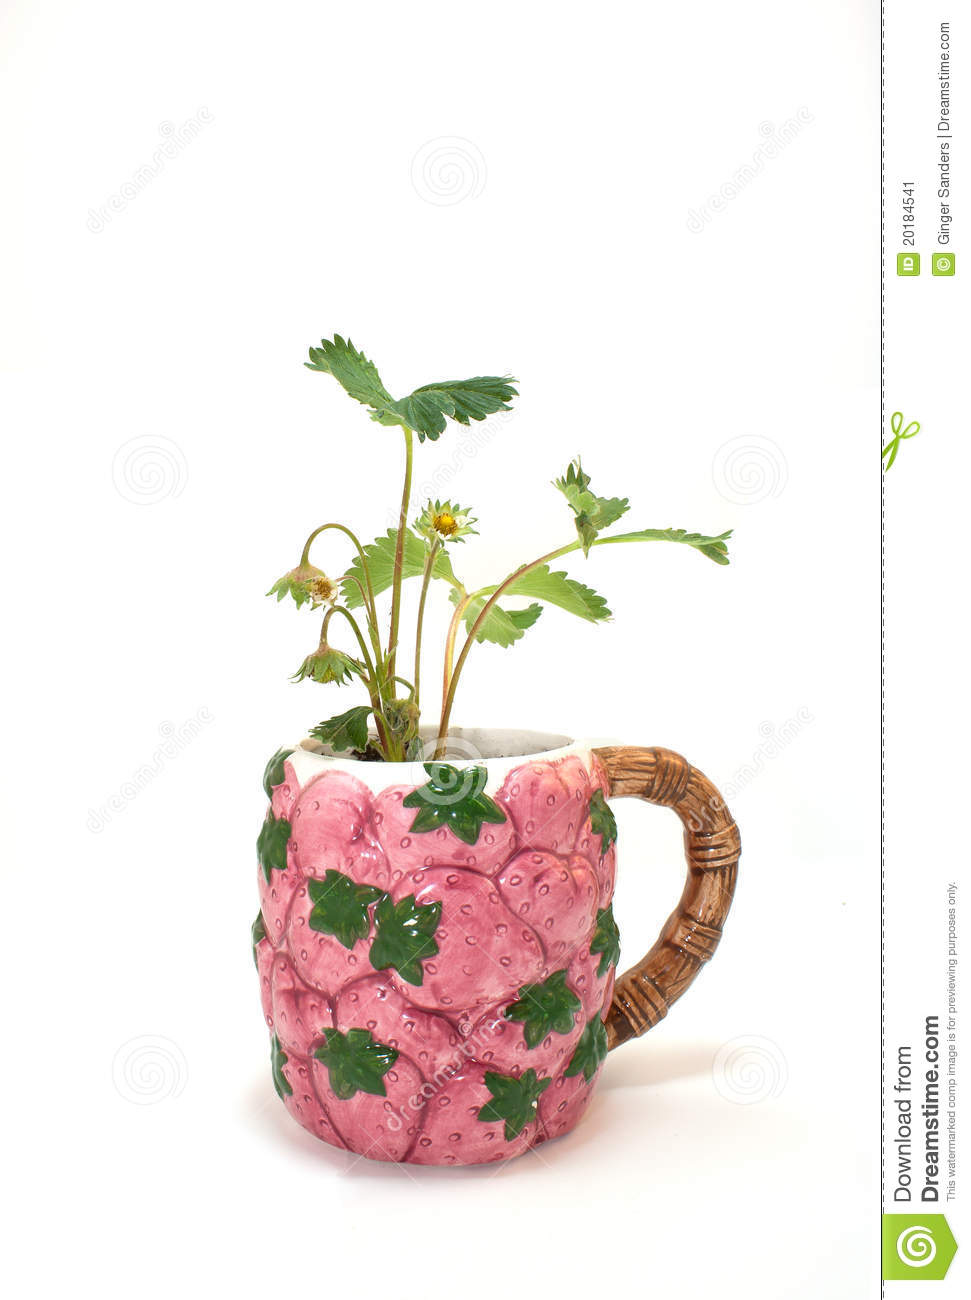 Strawberry Plant in A Strawberry Cup